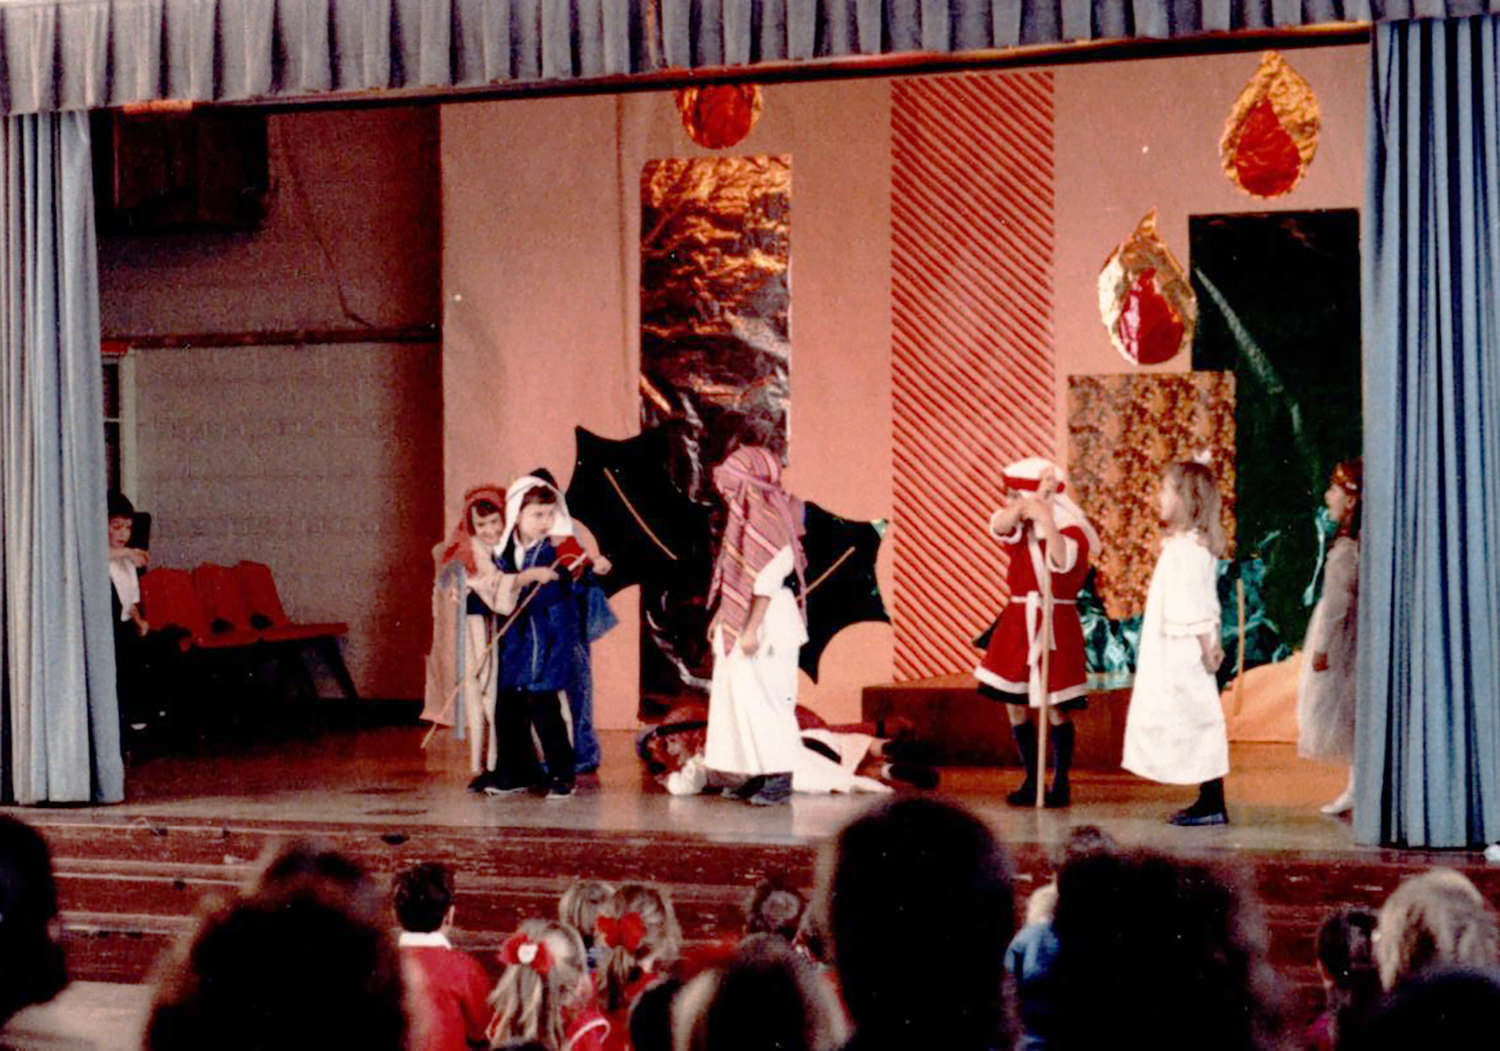 If I could be anything in the world, I would be an actor in Broadway musicals. (But I'm tone deaf so that was never going to happen.) The highlight of my acting career was the 1st grade Christmas play. I challenge you to find a more terrified shepherd (far left) as she clutches onto the boy she had a crush on because those angels are scary. That's drama!